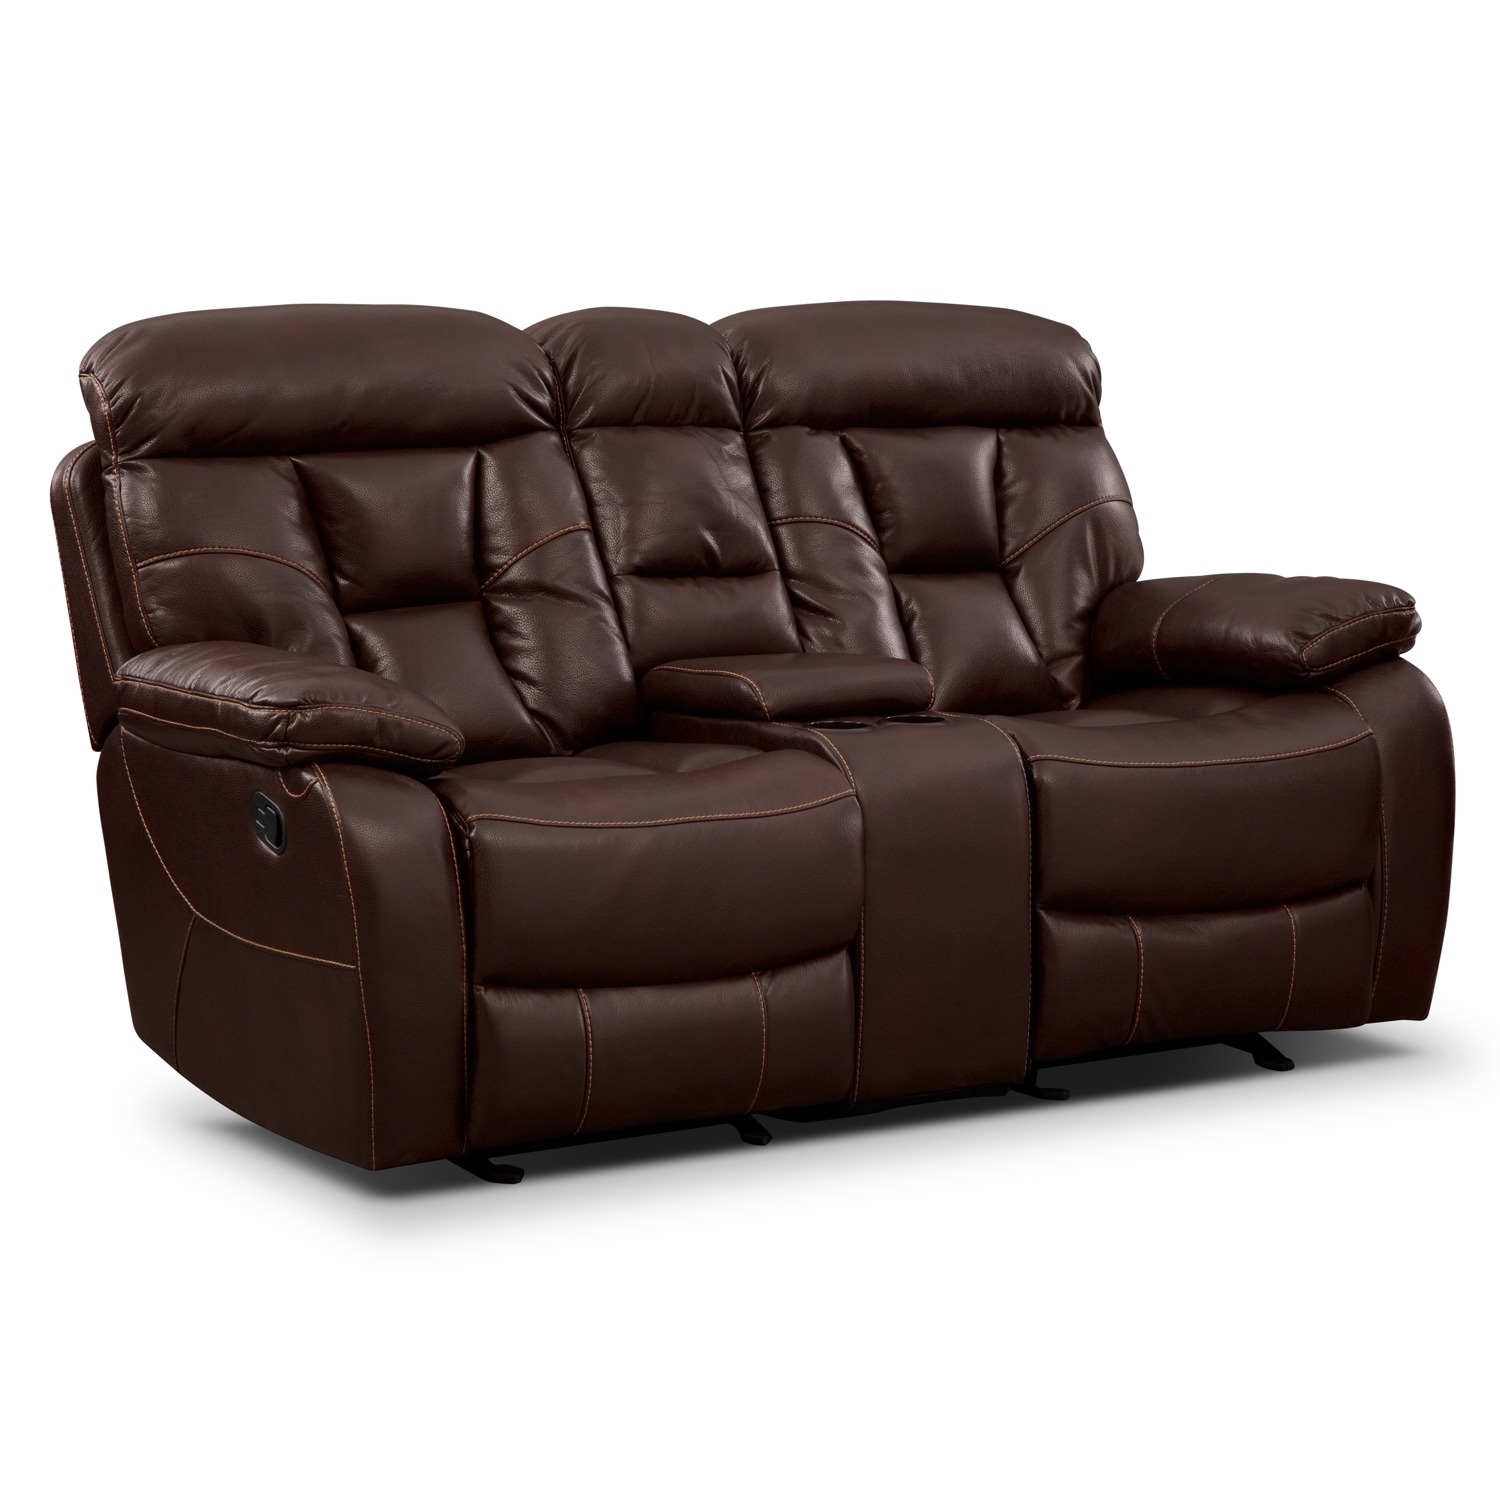 Dakota Glider Reclining Loveseat With Console Value City Furniture